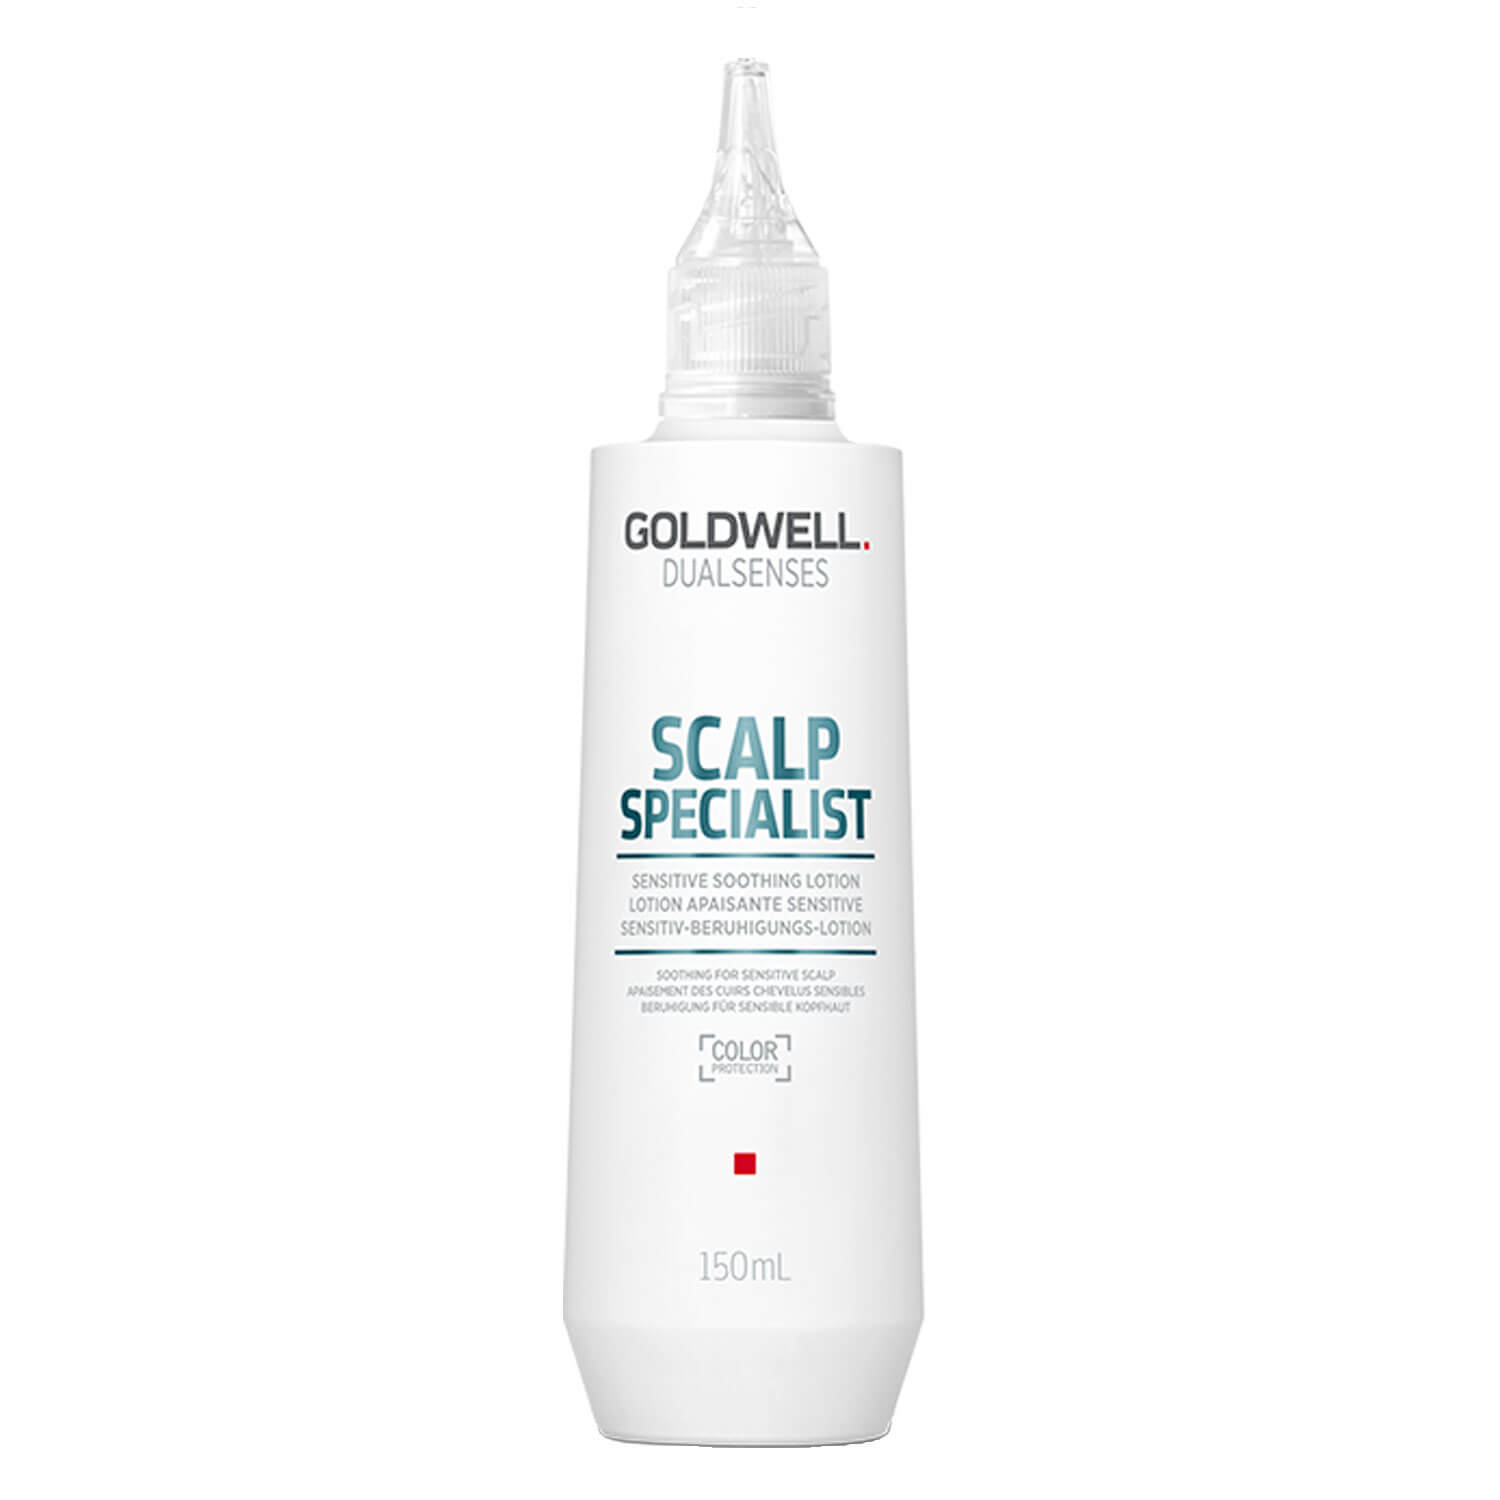 Dualsenses Scalp Specialist - Soothing Lotion